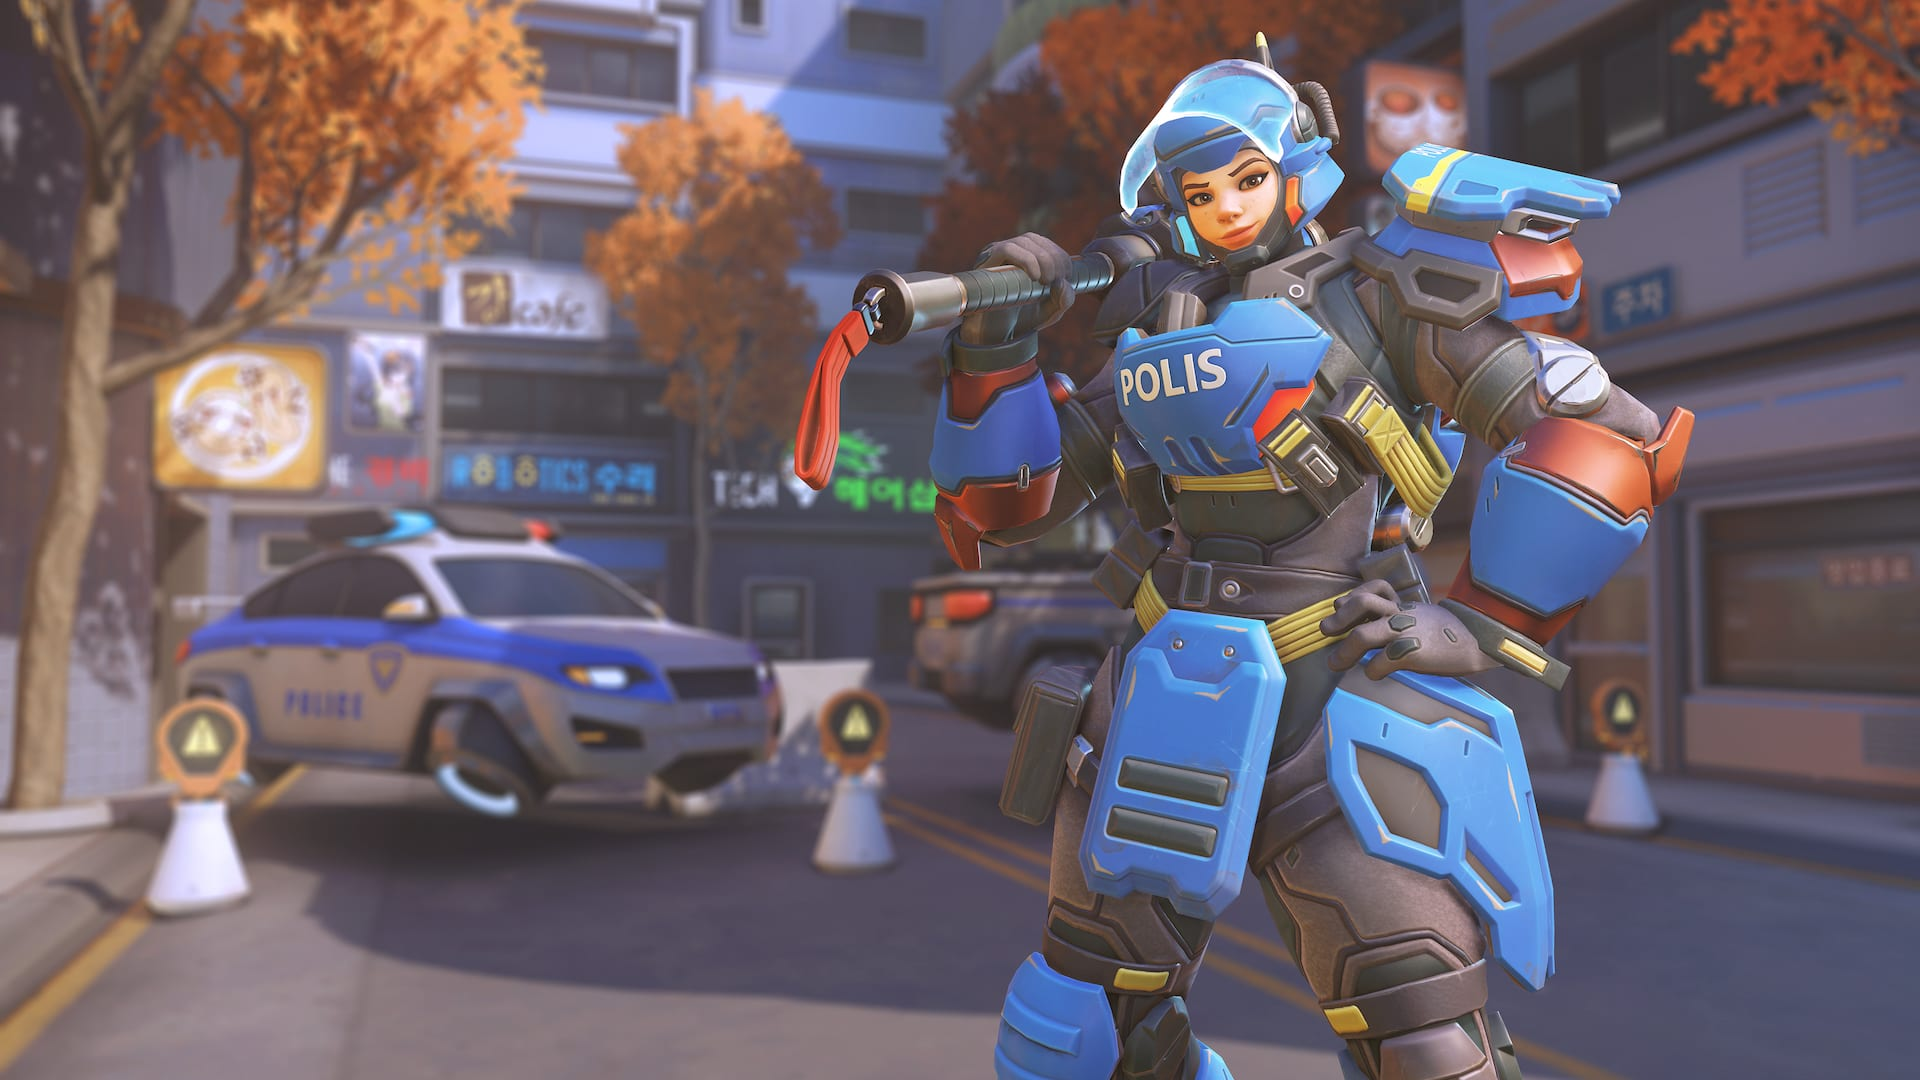 Riot Police Brigitte is now available as part of Overwatch Anniversary 2019.